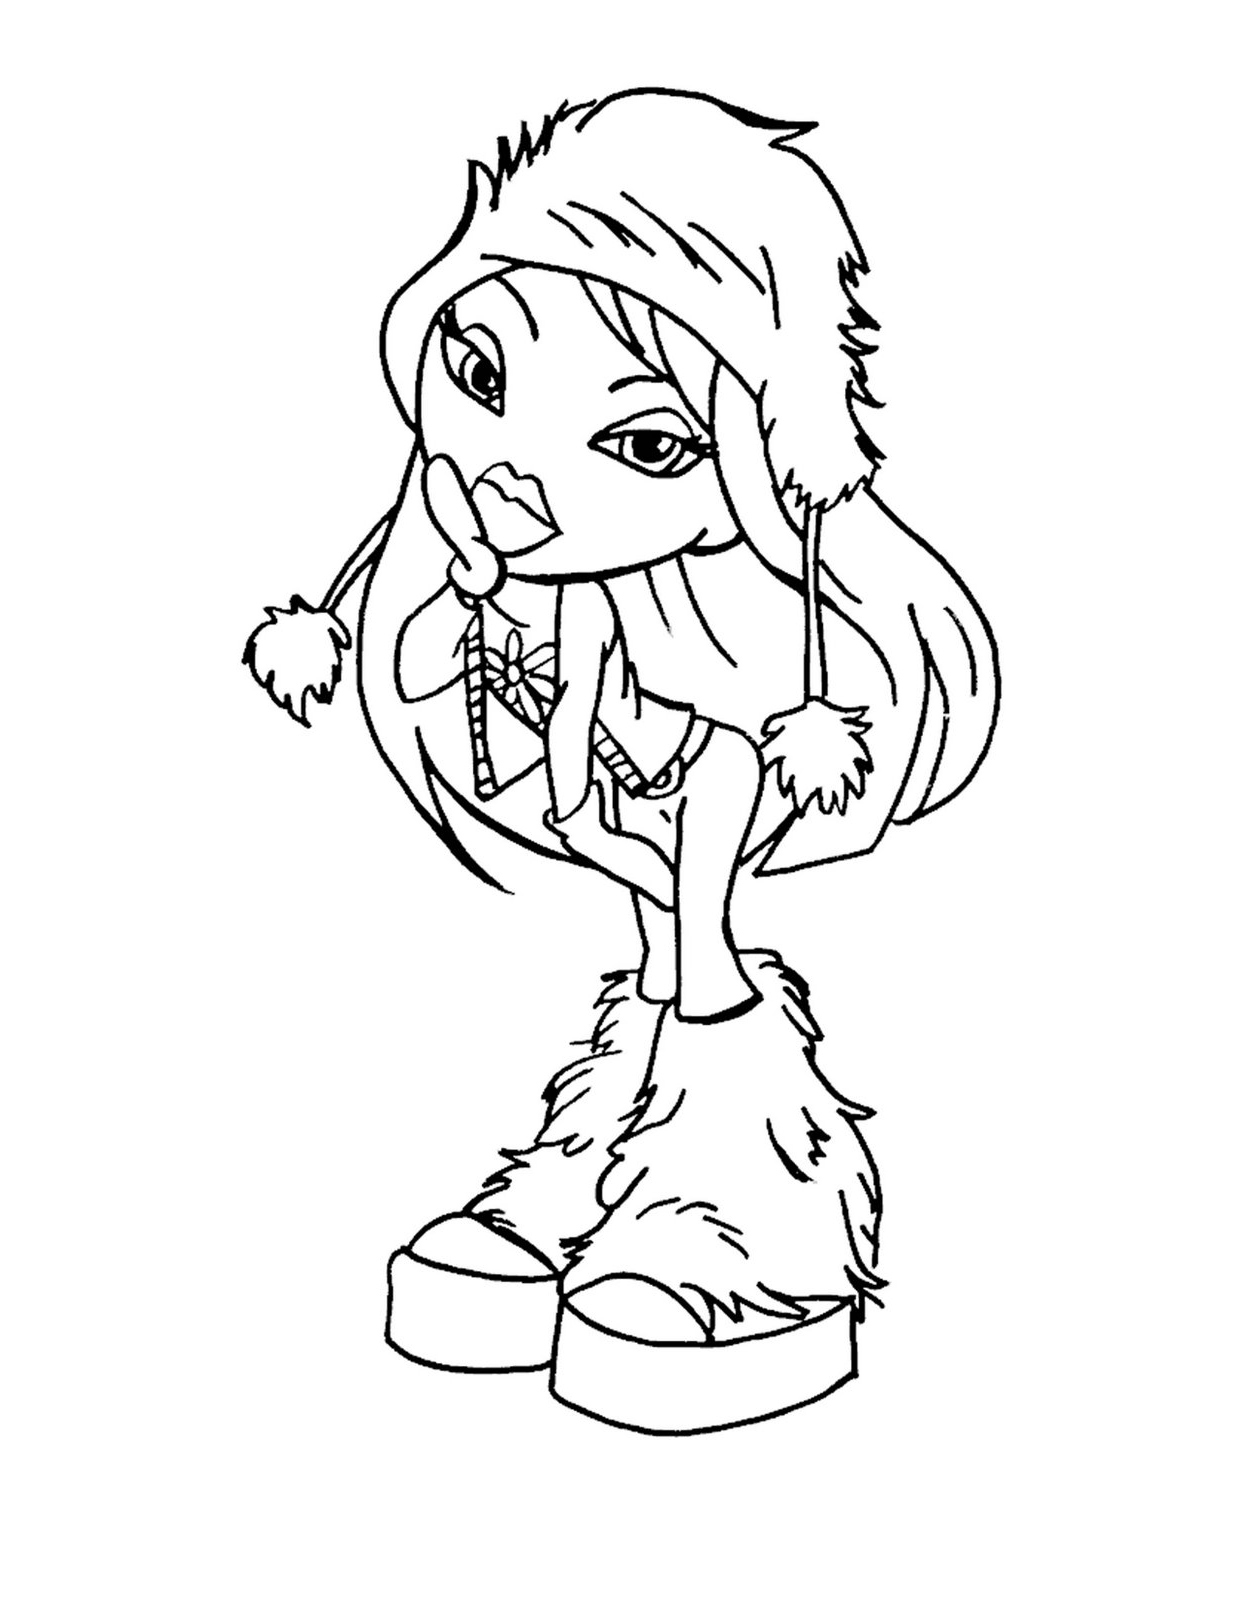 Bratz barbie coloring pages download